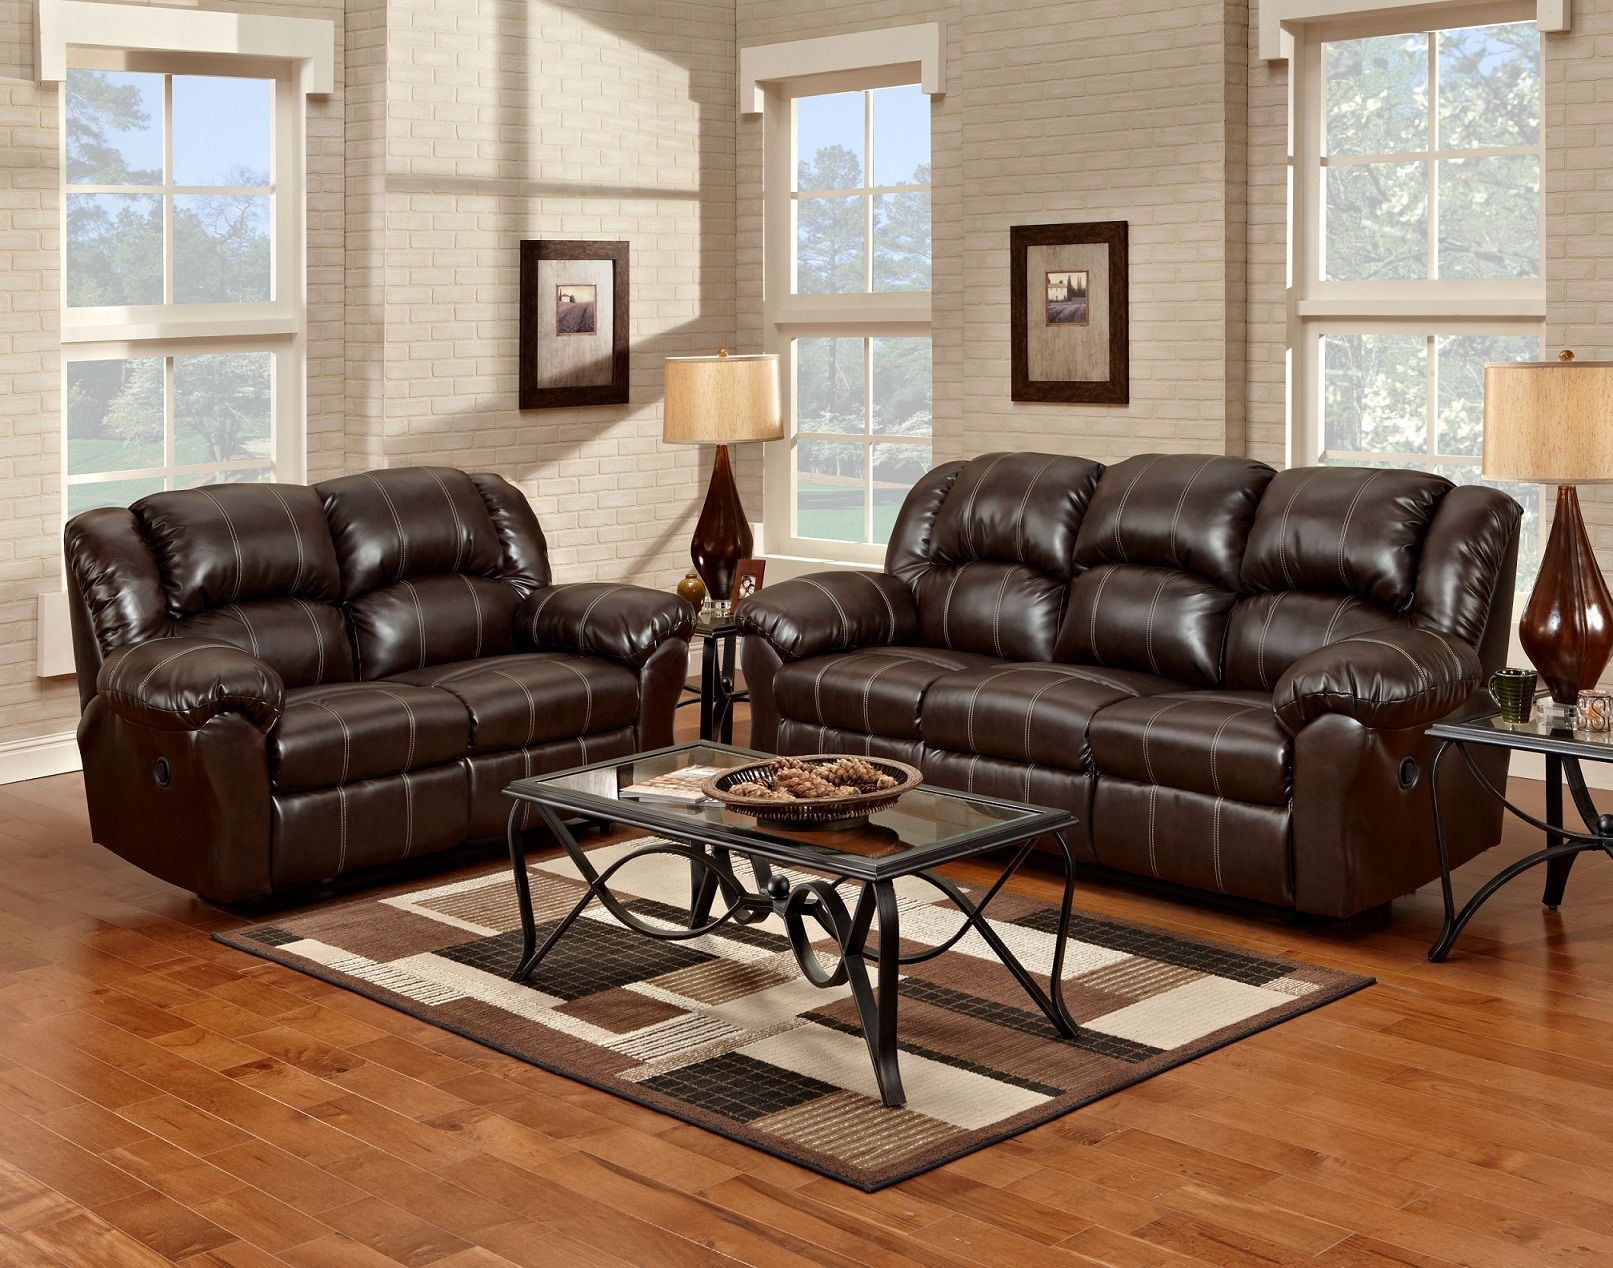 Dual Reclining Brown Leather Living Room Reclining Sofa And Loveseat Want To Make Your Home Feel L Living Room Leather Living Room Sets Sofa And Loveseat Set